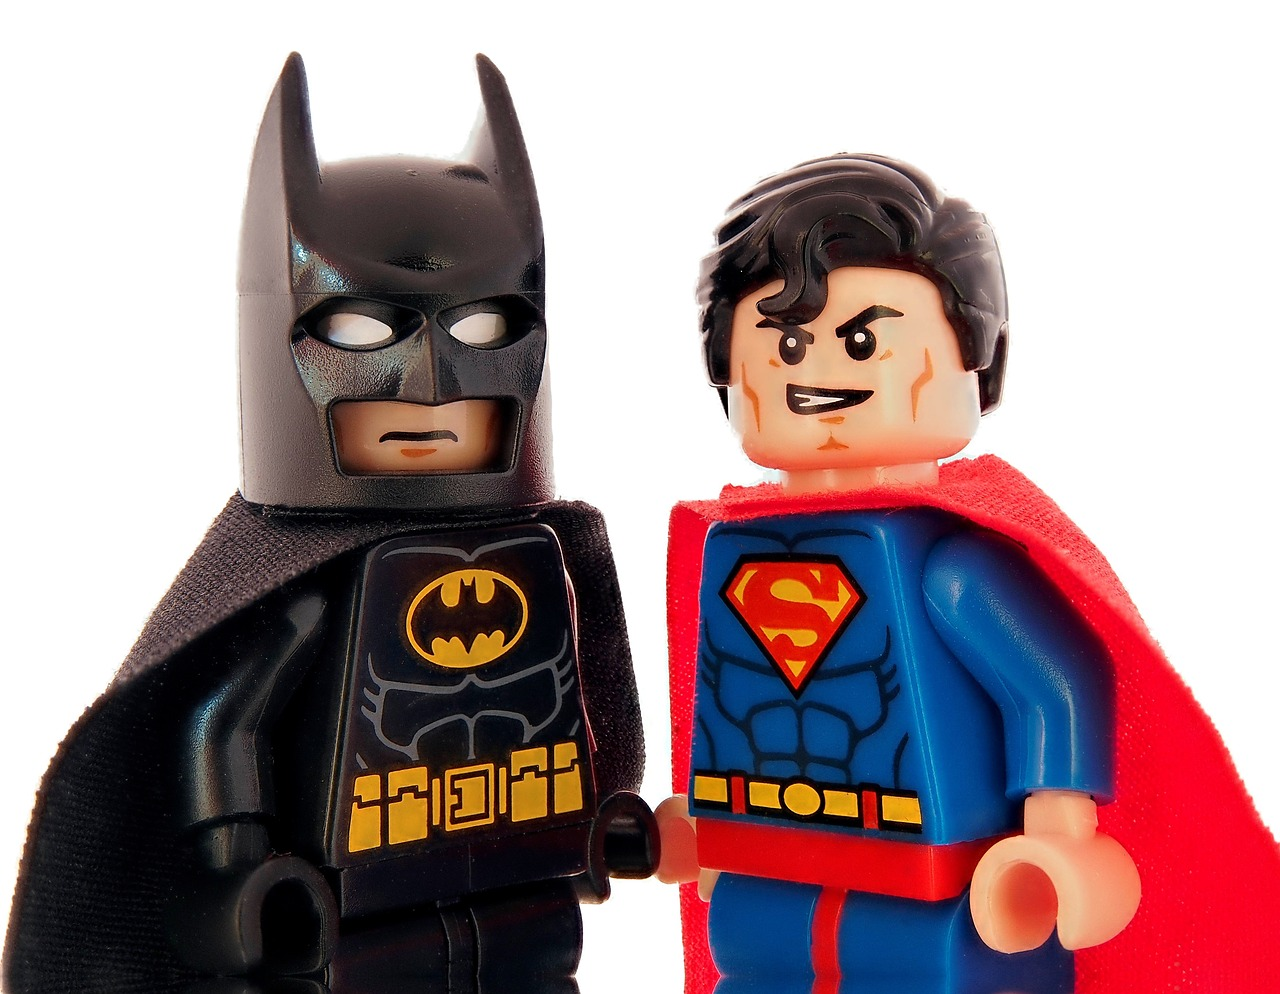 Lego Batman and lego Superman